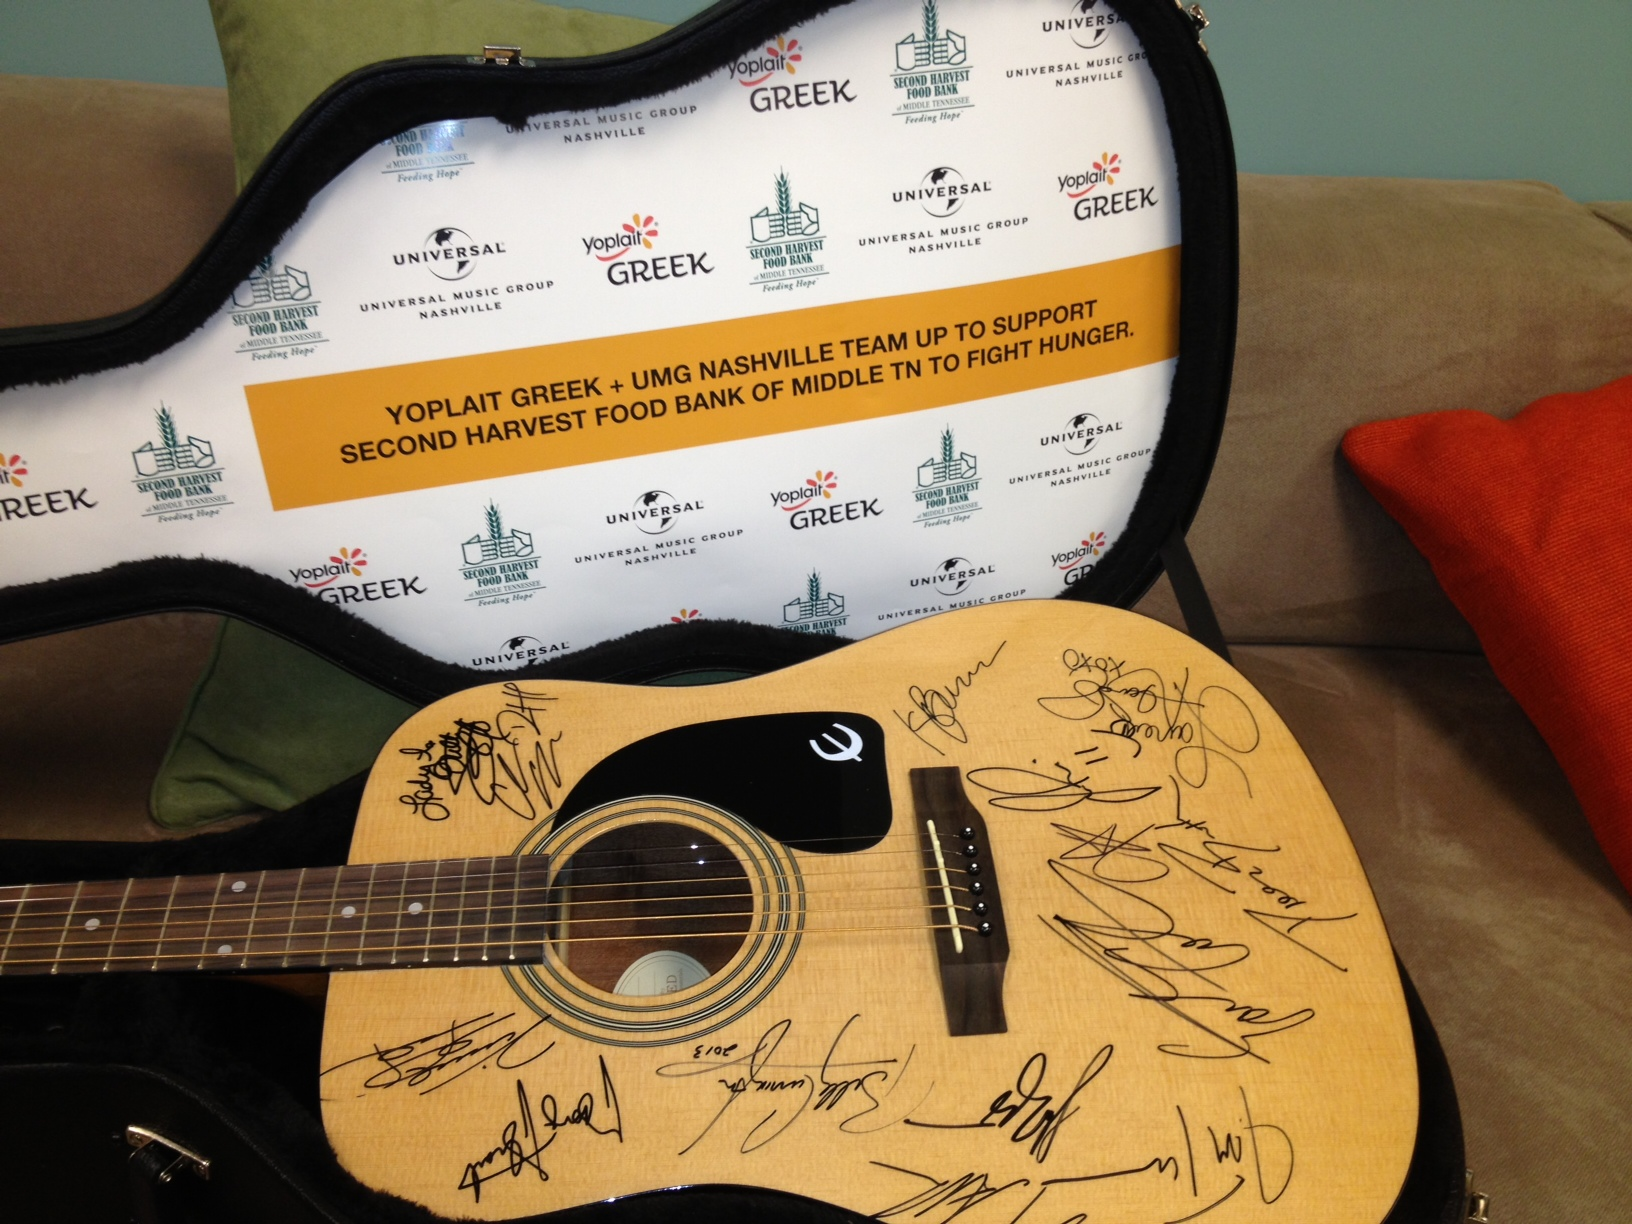 Signed Guitar - Yoplait Greek & Universal Music Group Nashville Team Up to Help Fight Hunger